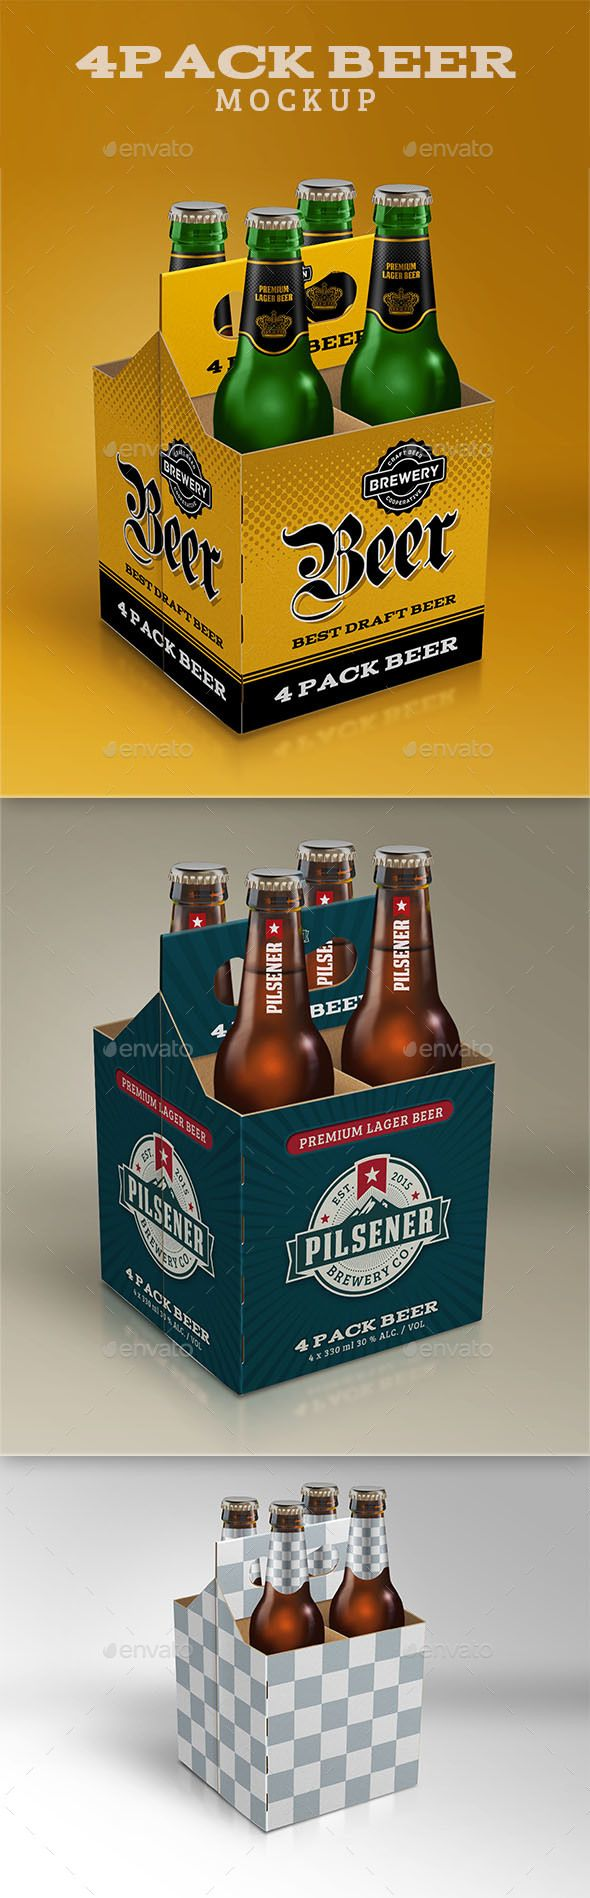 Download 4 Pack Beer Mockup | Beer bottle template, Beer, Beer box